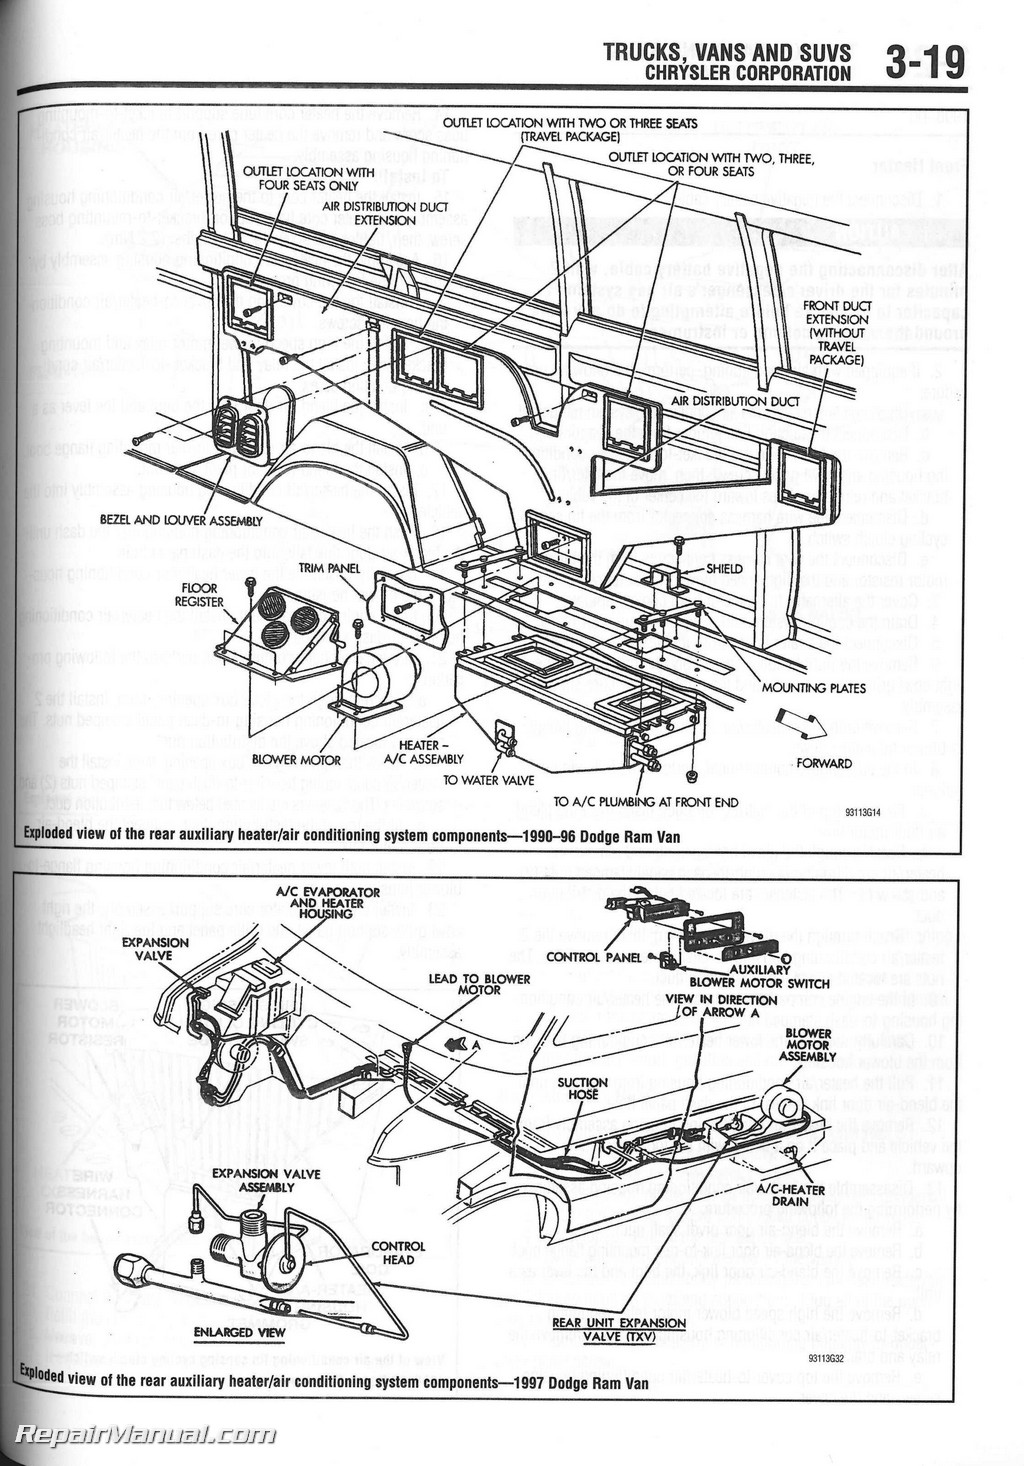 Infiniti I30 Wiring Diagram Books Of G37 Chilton 1990 2000 Heater Core Installation Manual Radio